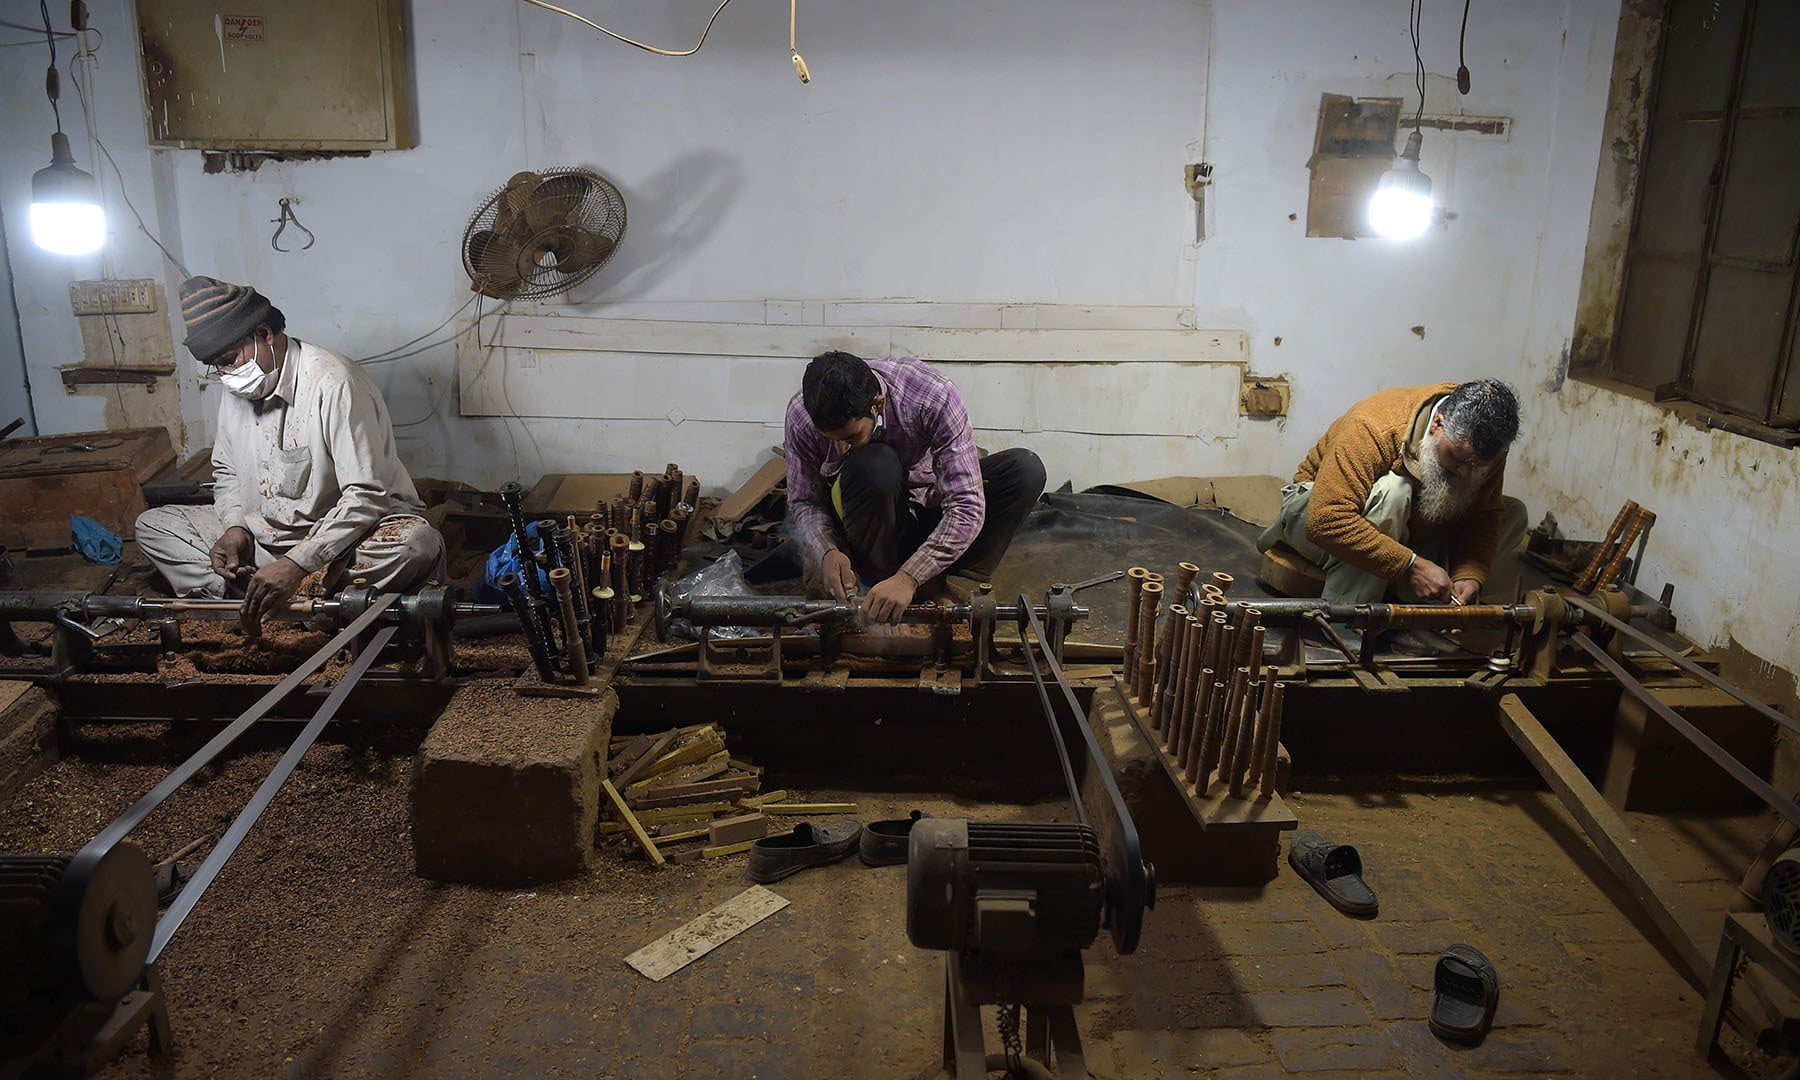 In this picture taken on January 25, artisans work on machines to make components to be used in bagpipes at the Mid East bagpipe factory in Sialkot. — AFP